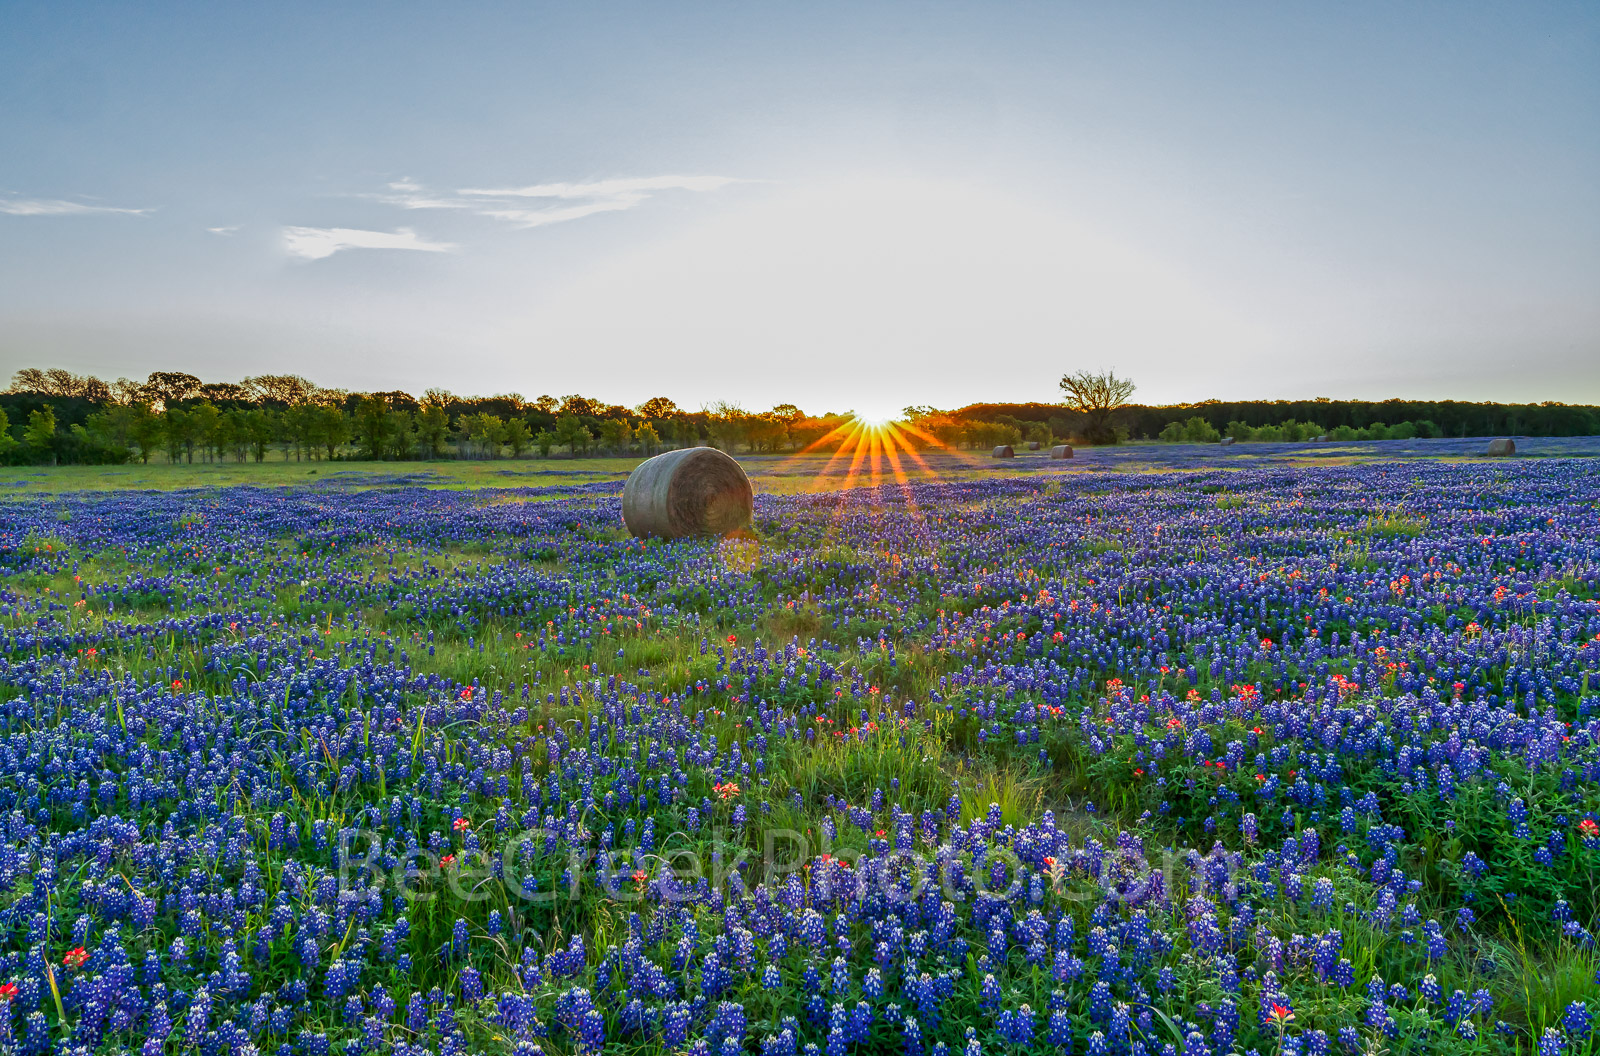 Texas bluebonnets, hay bales, sunrise, texas bluebonnet wildflowers, farm, field, rays, sun, indian paintbrush, pop of red, light, rural texas, hay,, photo